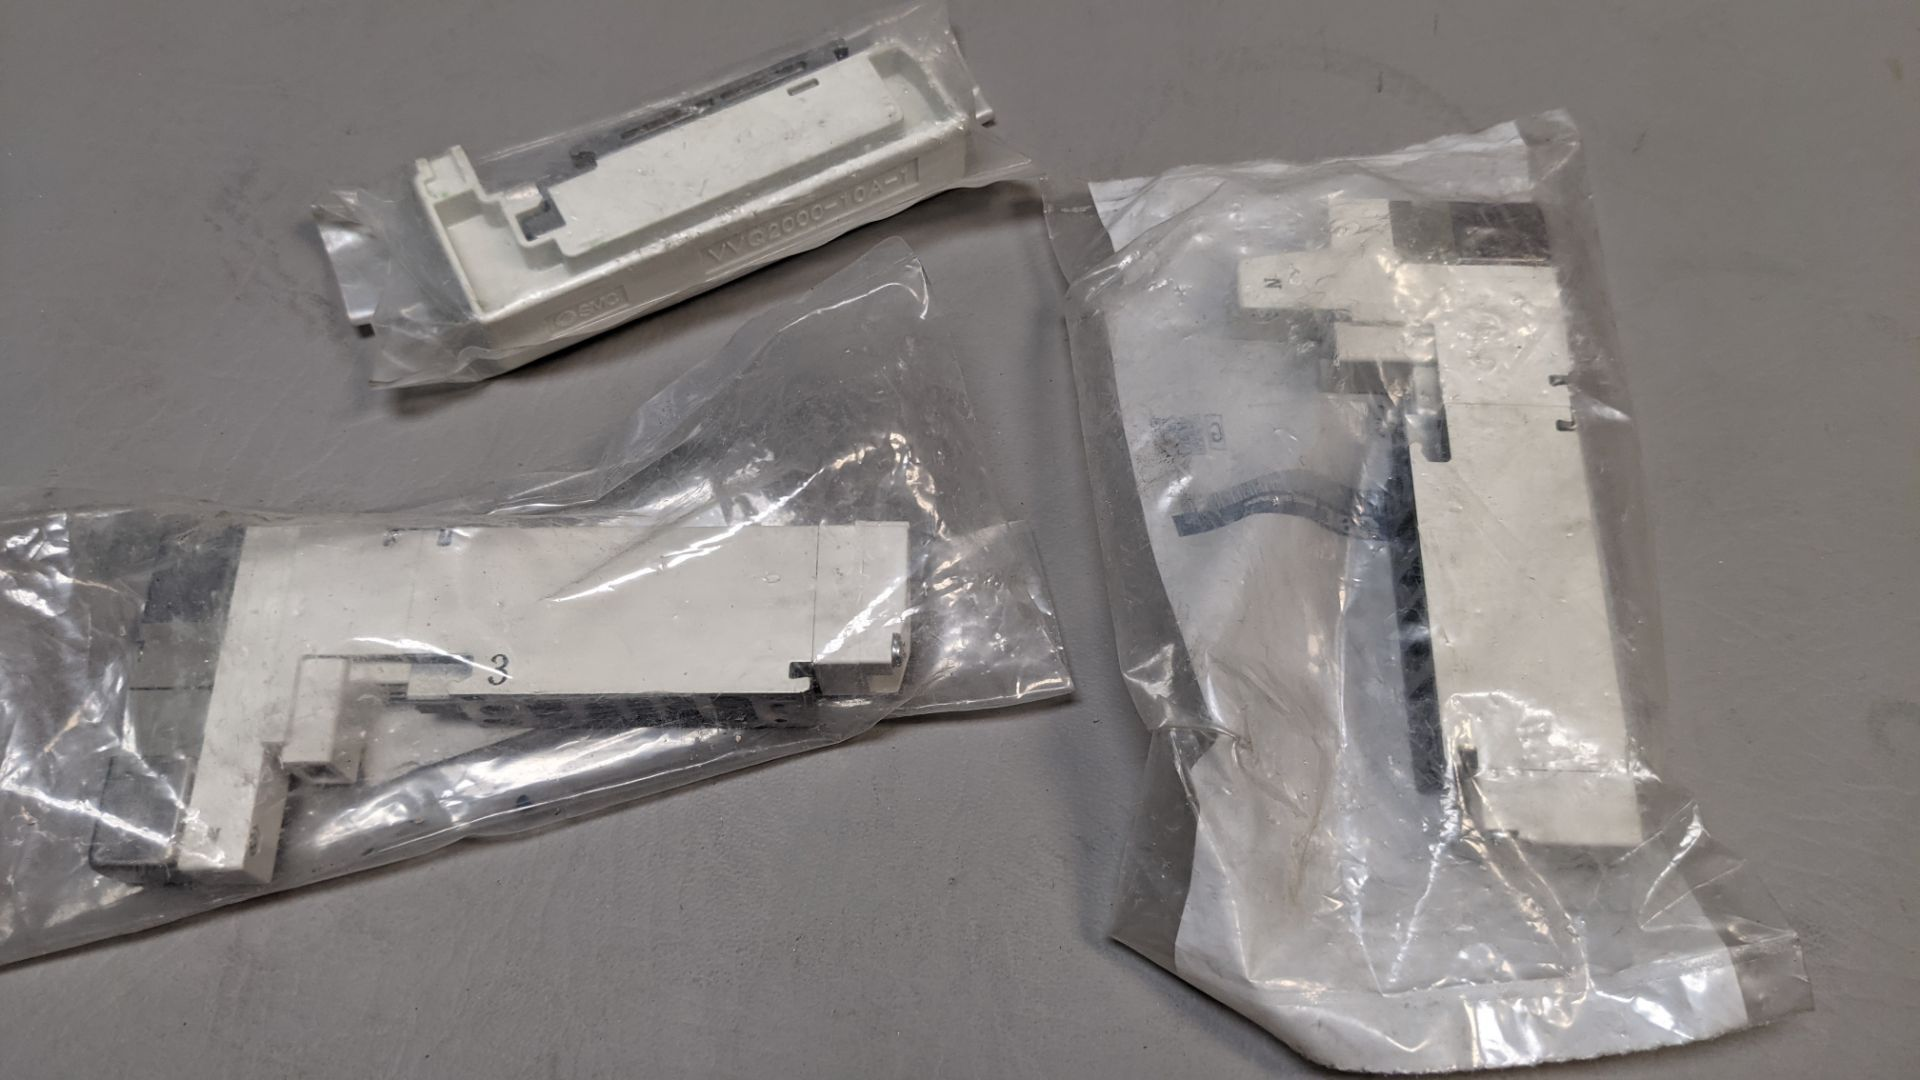 LOT OF NEW SMC PARTS - Image 2 of 2